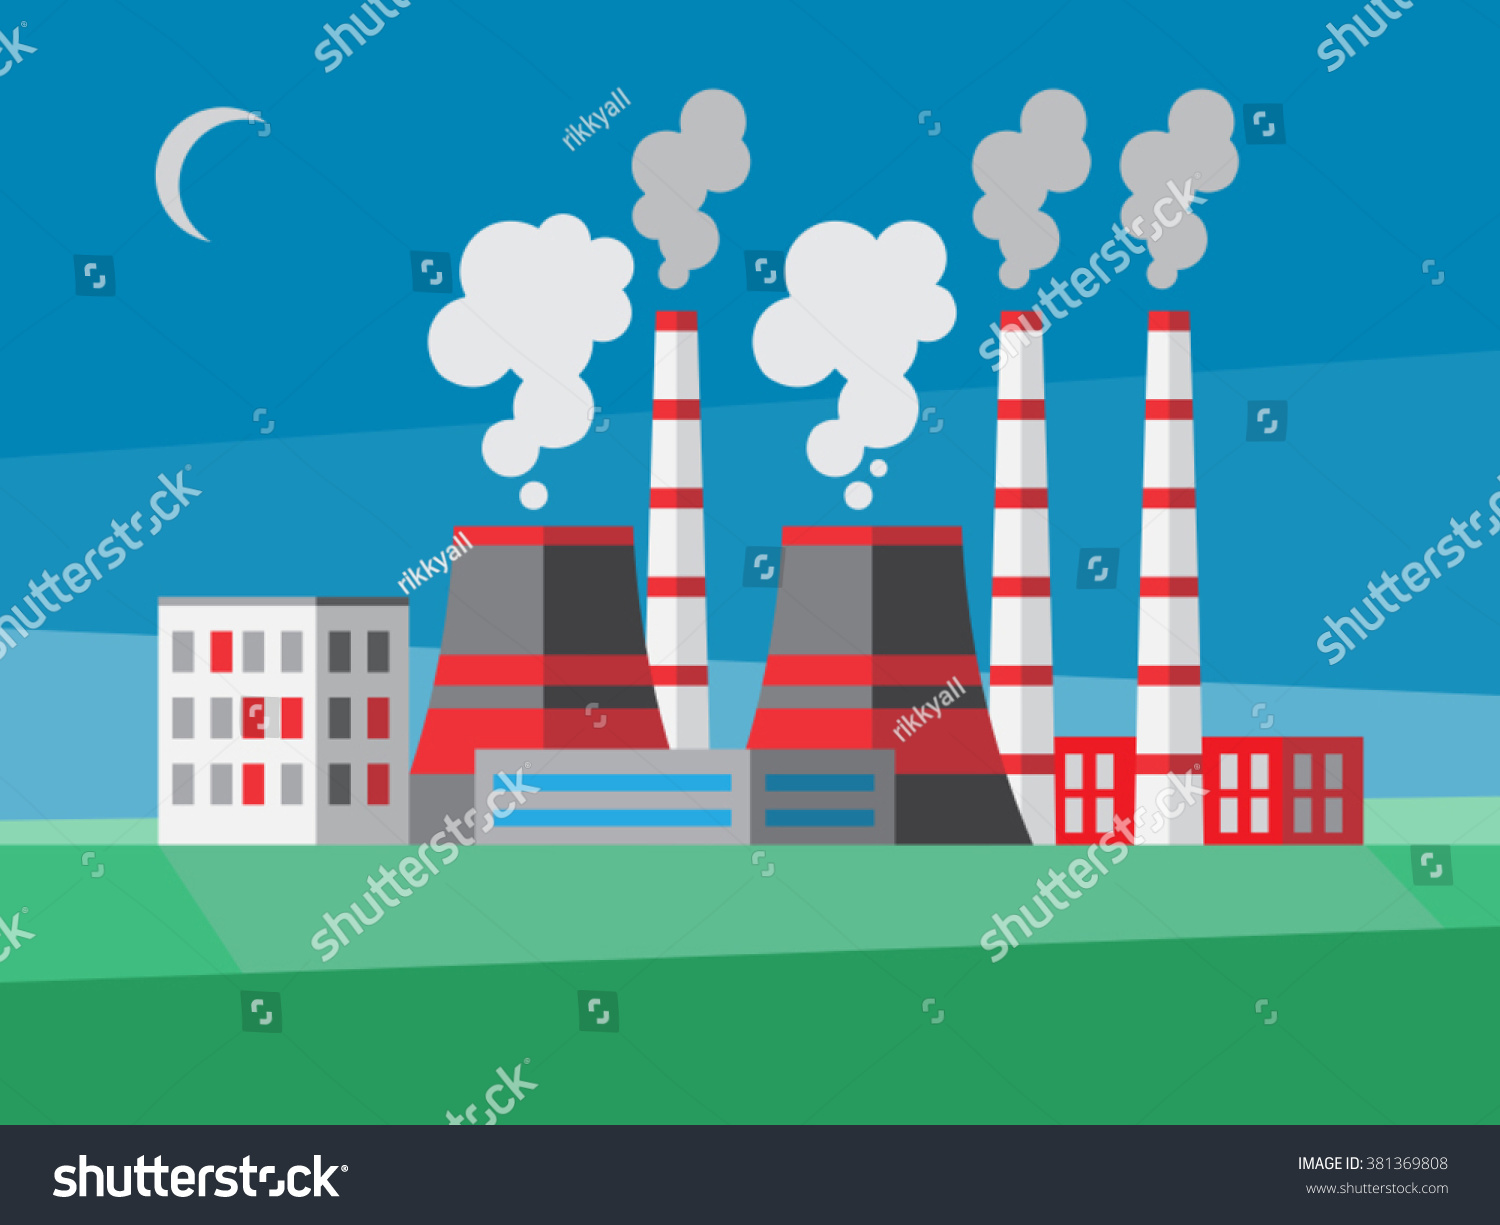 Power Plant Illustration Flat Style Stock Vector Royalty Free 381369808